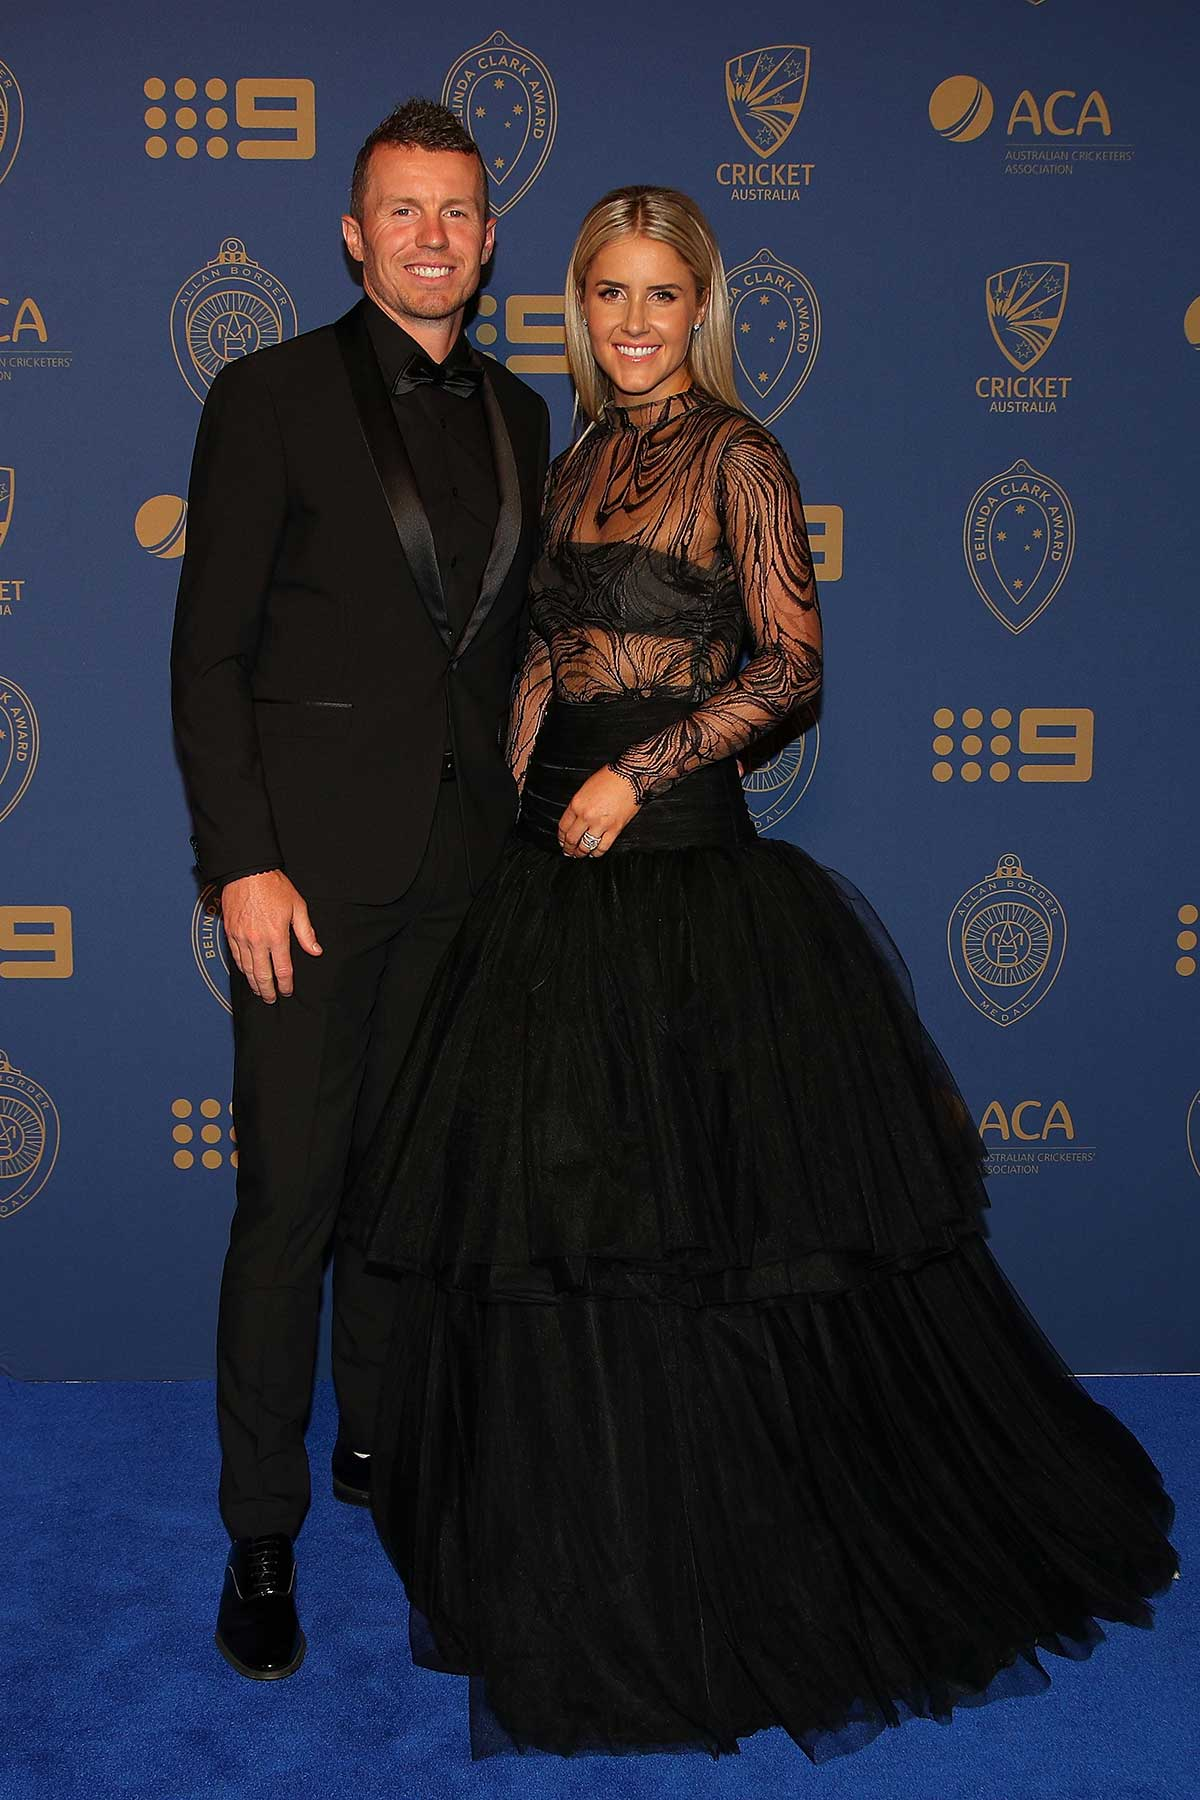 Peter Siddle and wife Anna Weatherlake // Getty